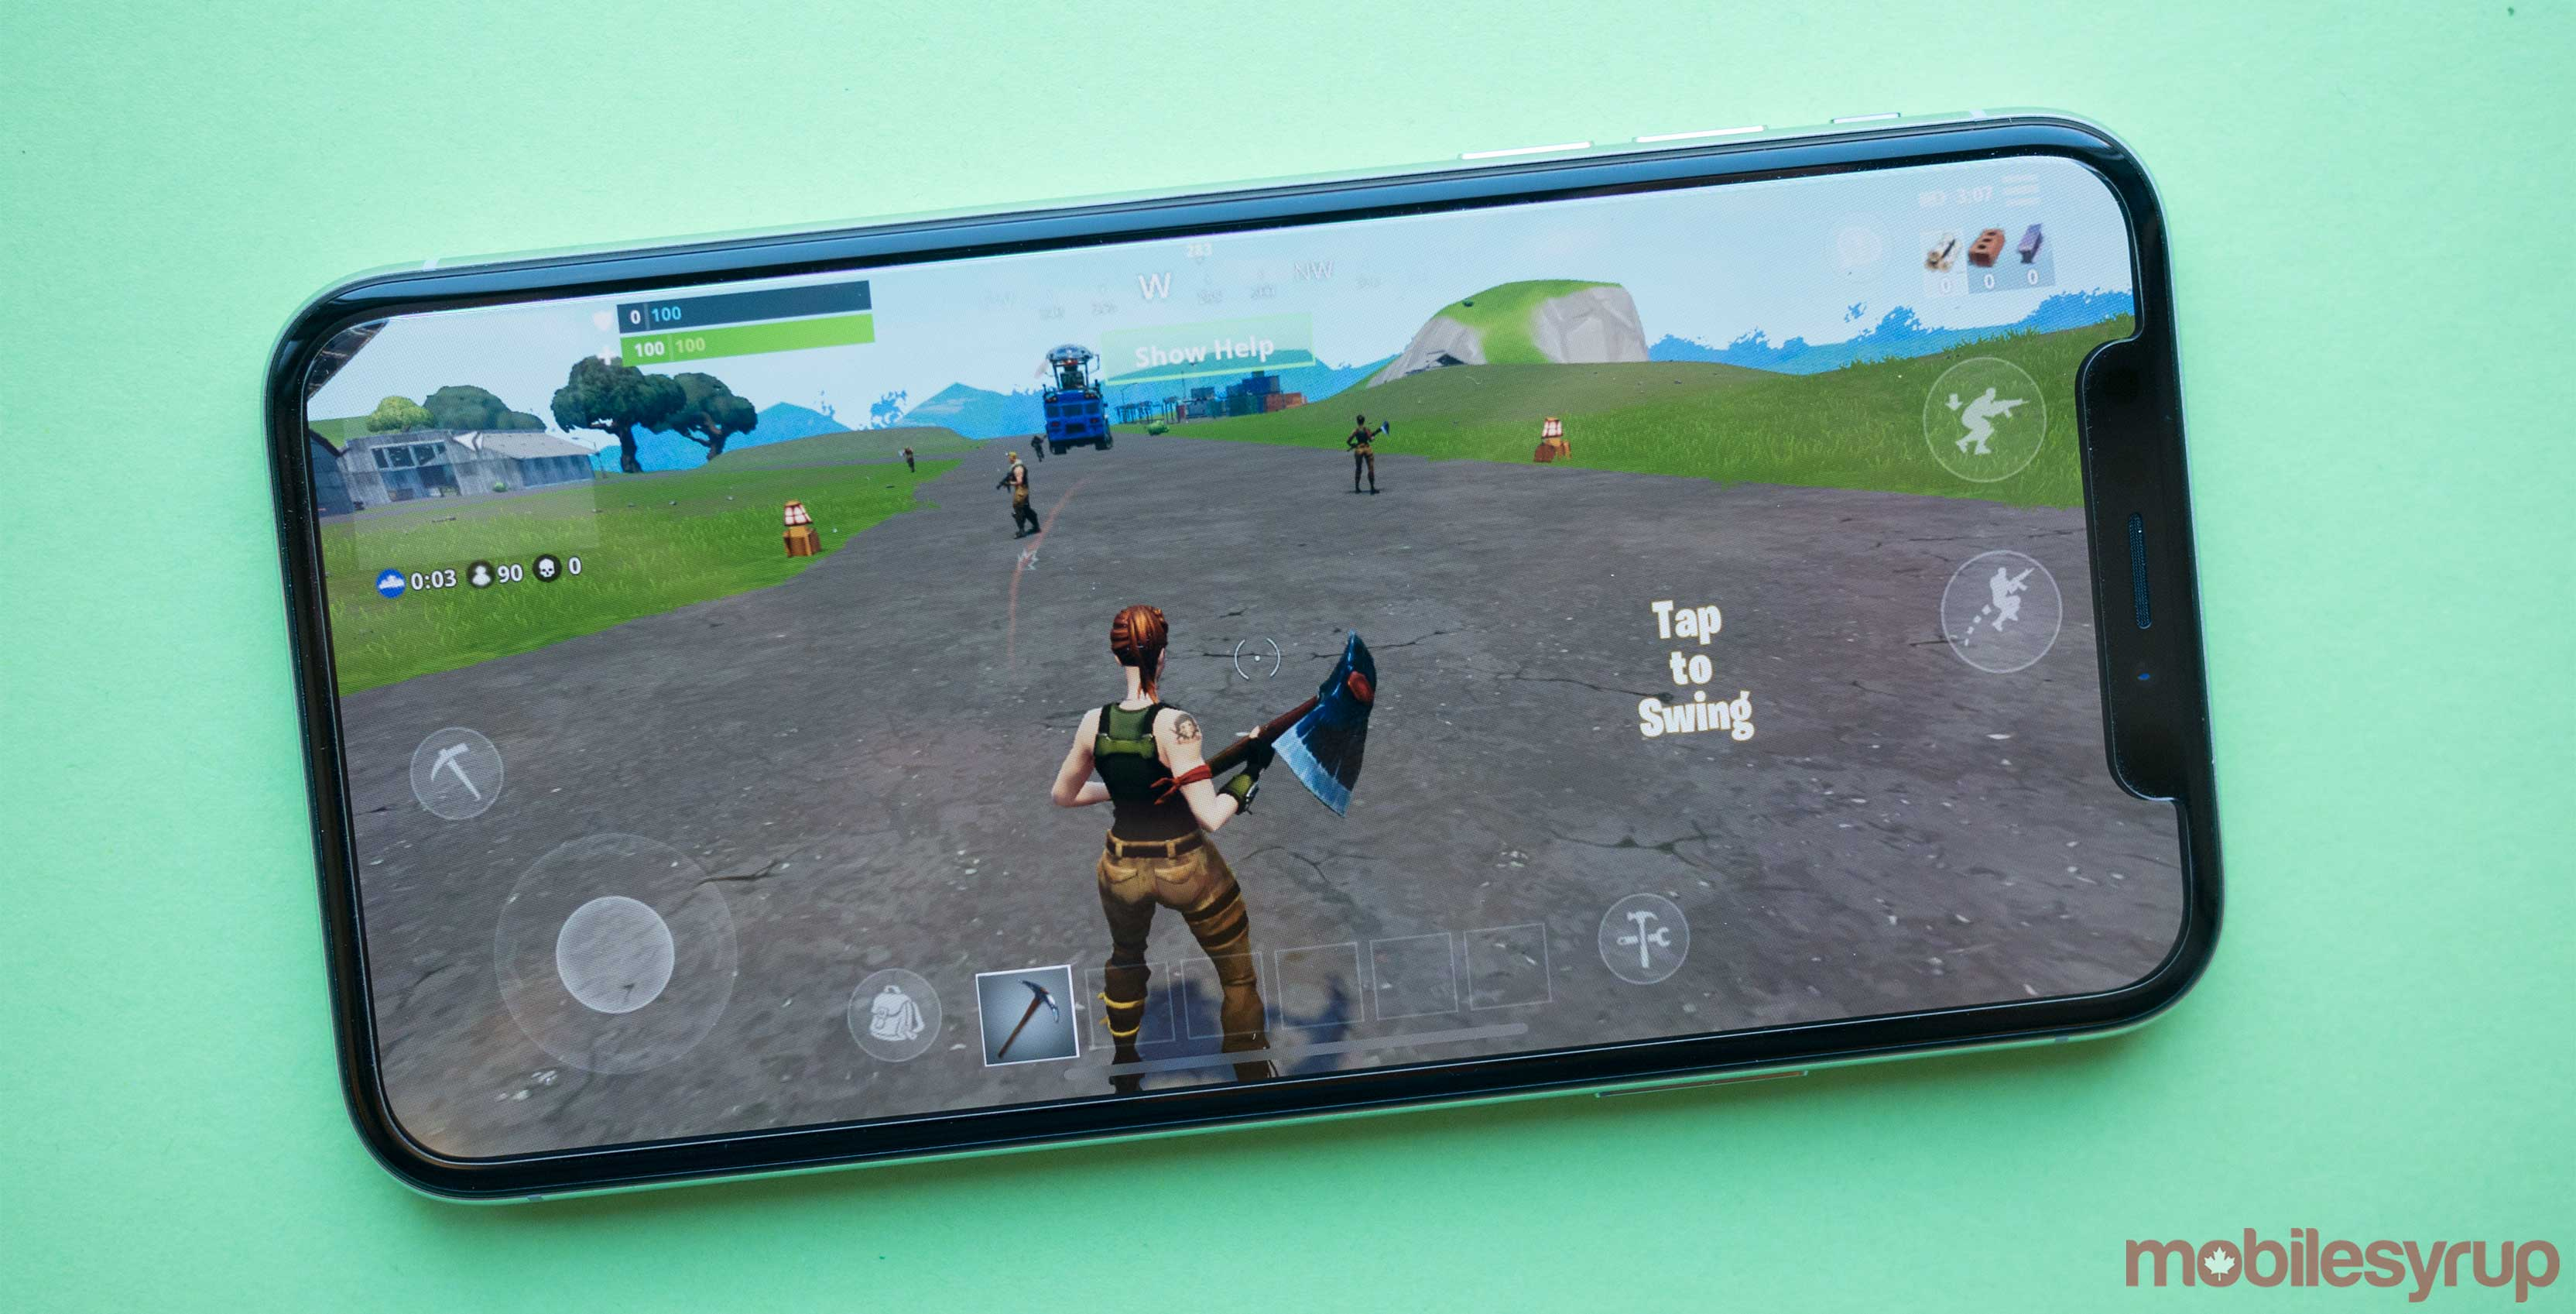 'Fortnite' earned $500 million USD on iOS in under a year